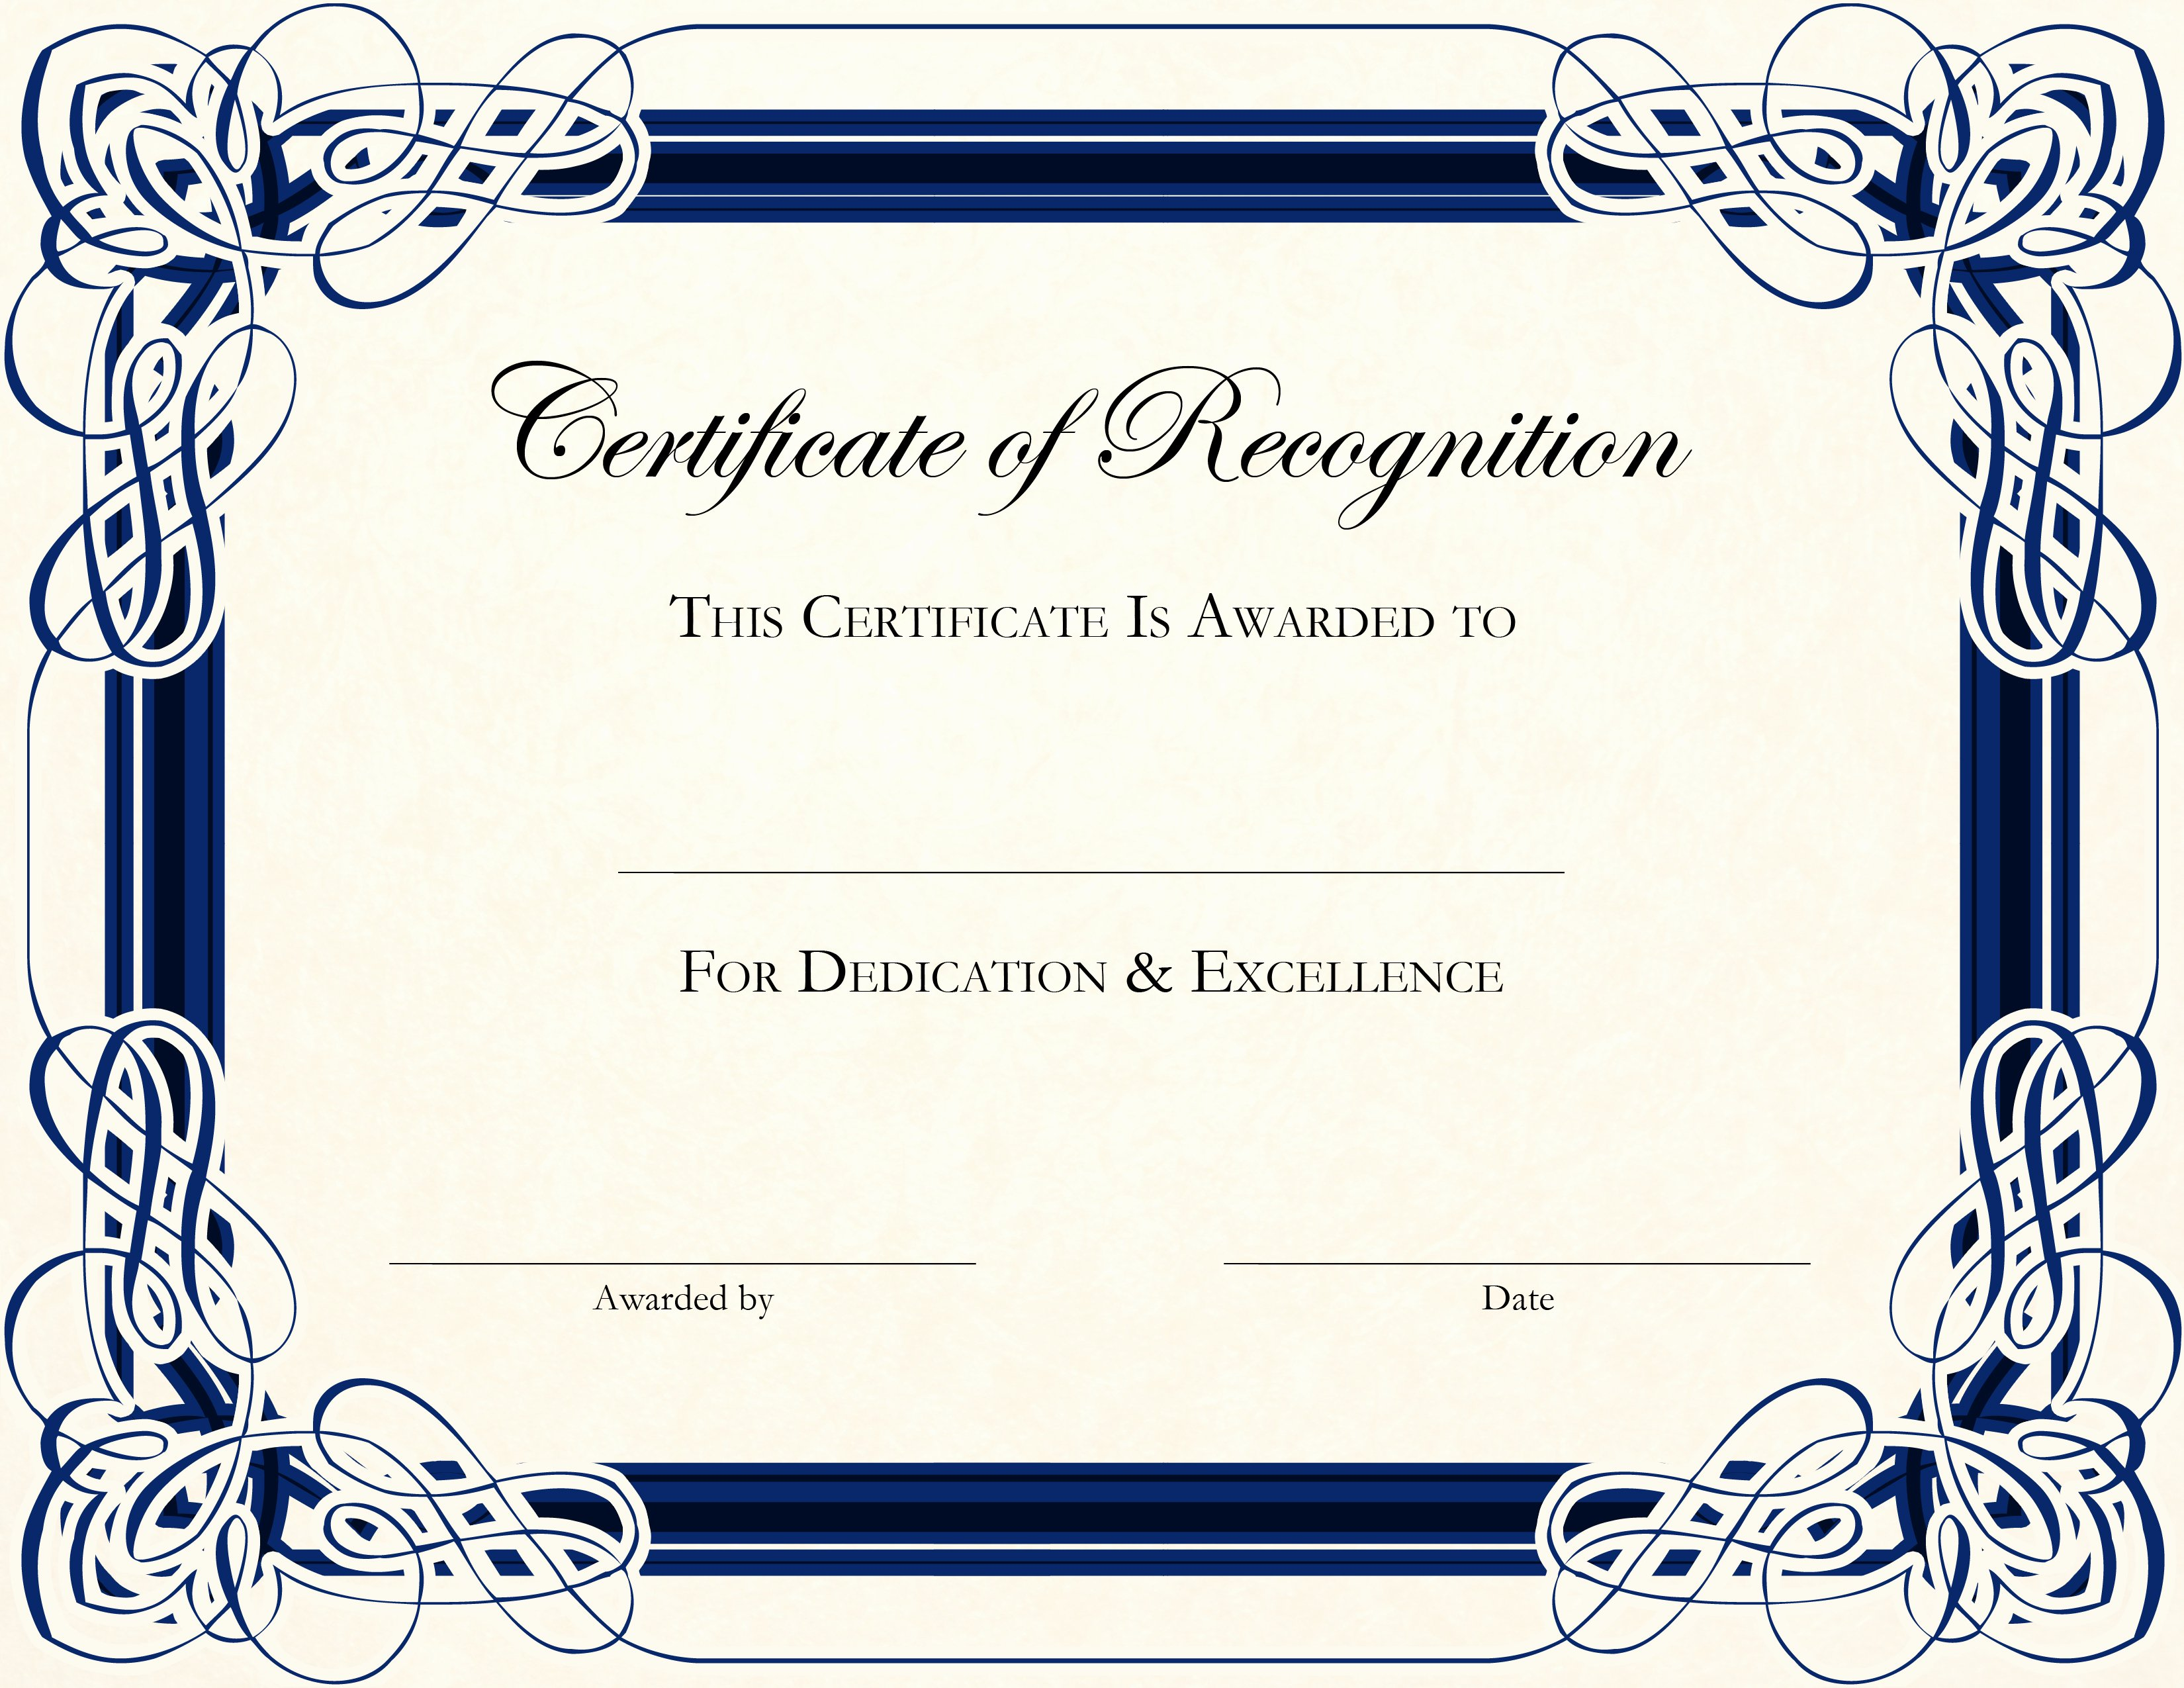 Certificate Template for Kids Portablegasgrillweber